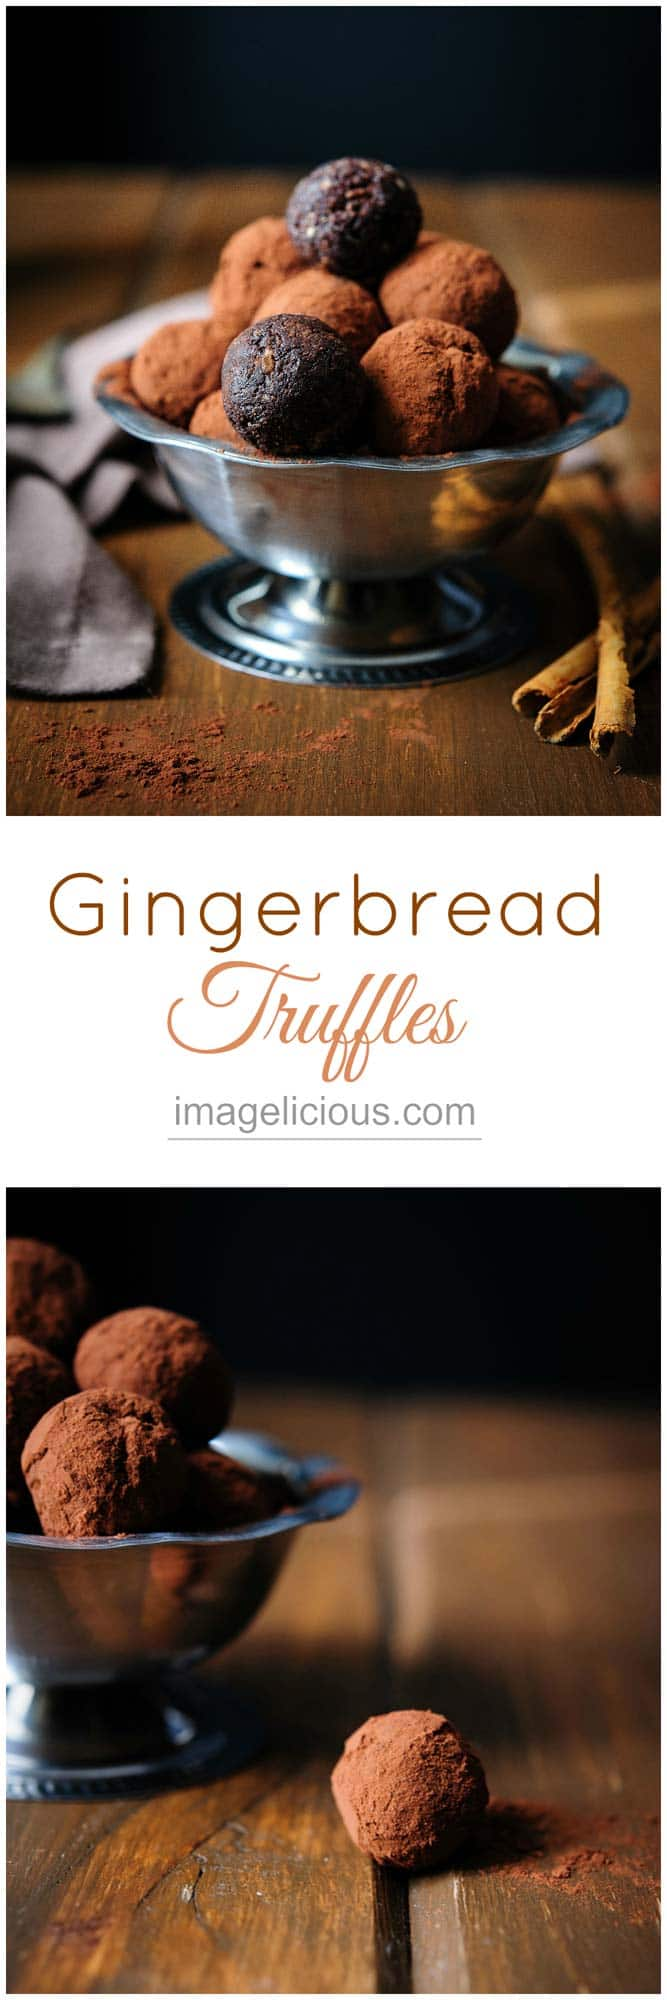 Gingerbread Truffles are delectable and addictive with perfect holiday flavours, no-one will know that these sweet and delicious treats are made out of dates, prunes and pecans. They are vegan and gluten-free. | Imagelicious #Holidays #Holidaybaking #Christmas #Christmasbaking #Gingerbread #Truffles #Vegan #Dates #Imagelicious #GlutenFree